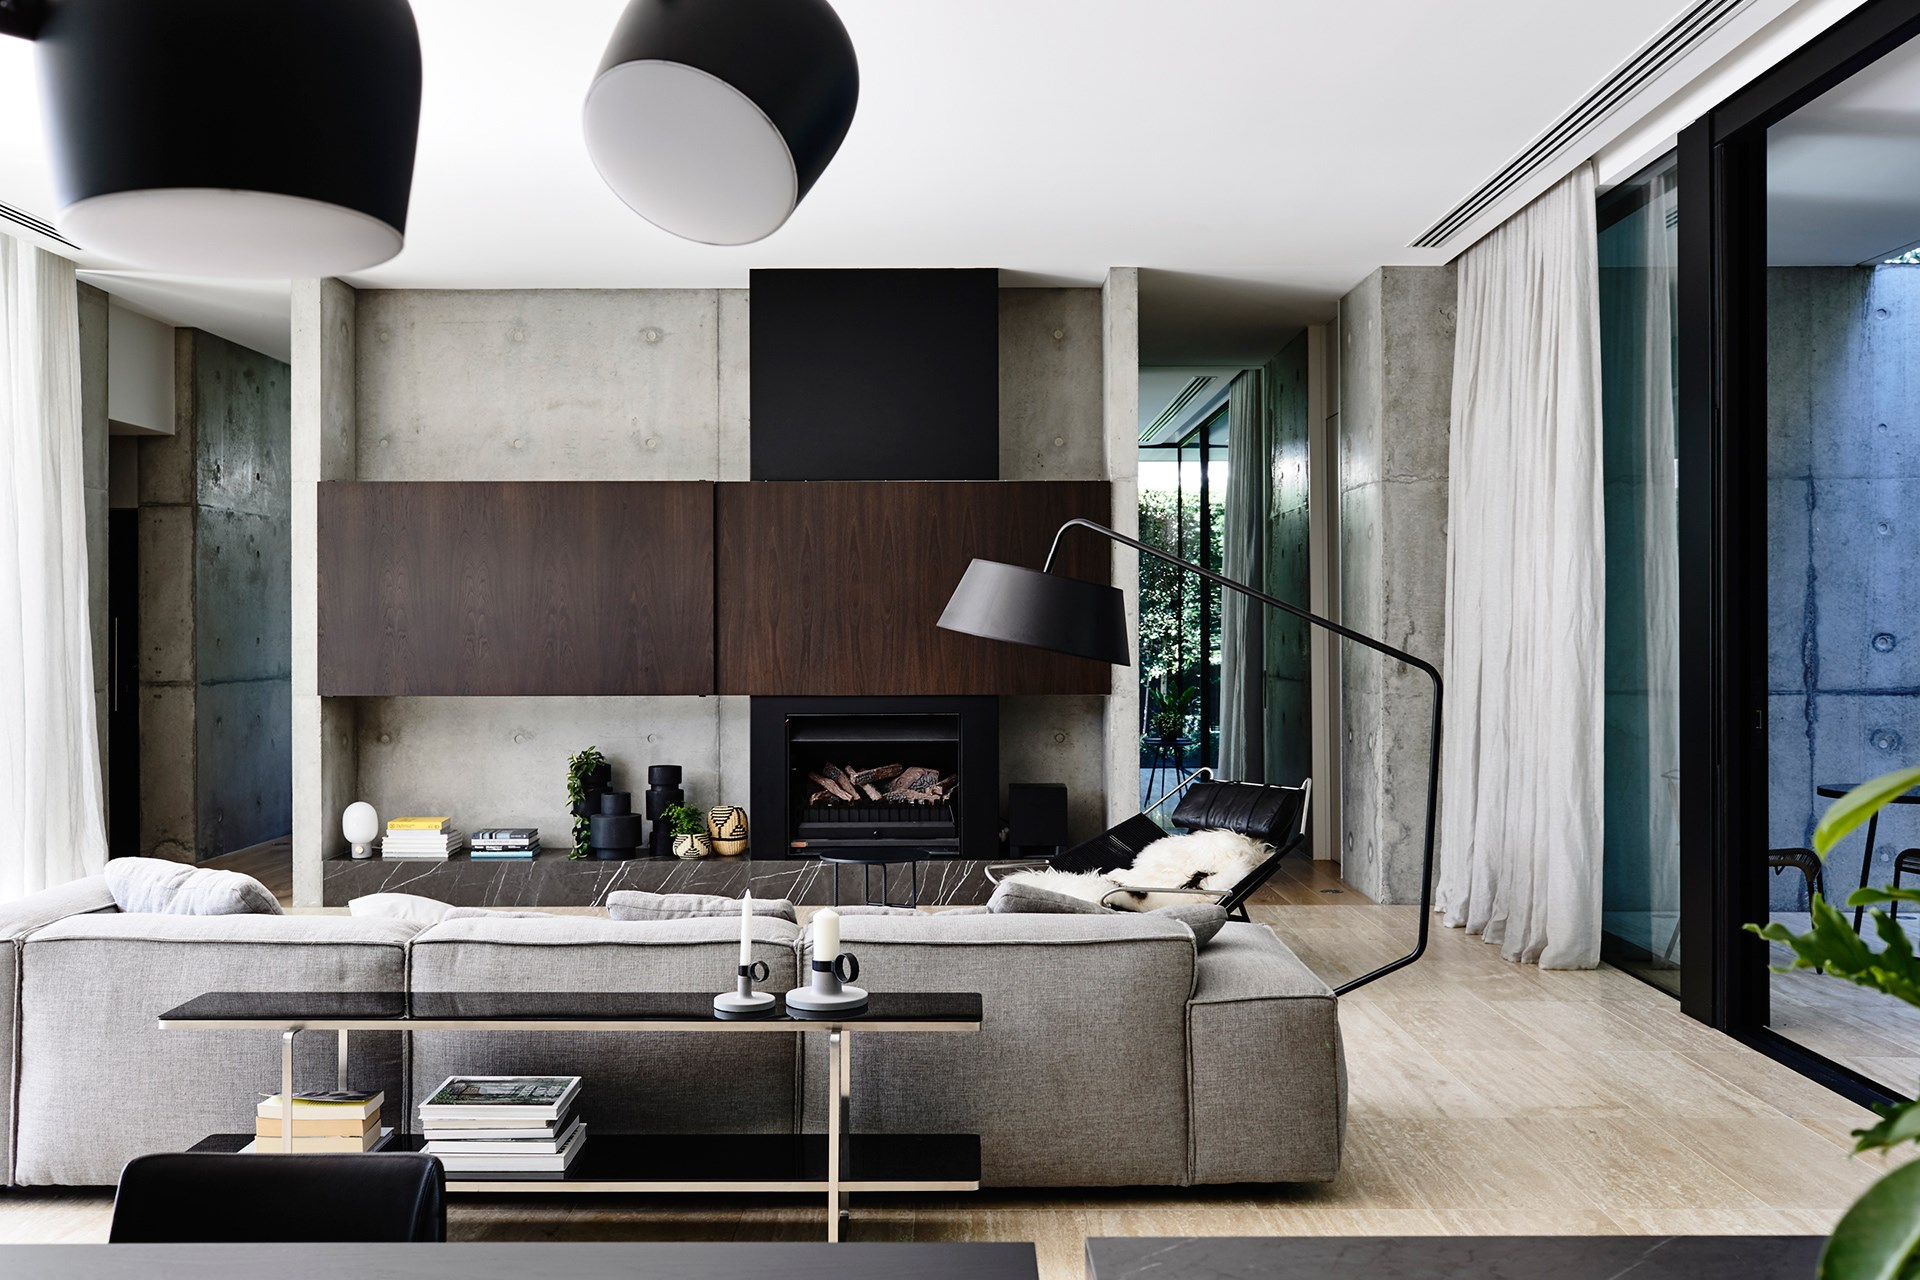 Texture and form, rather than colour, give the living room its appeal.